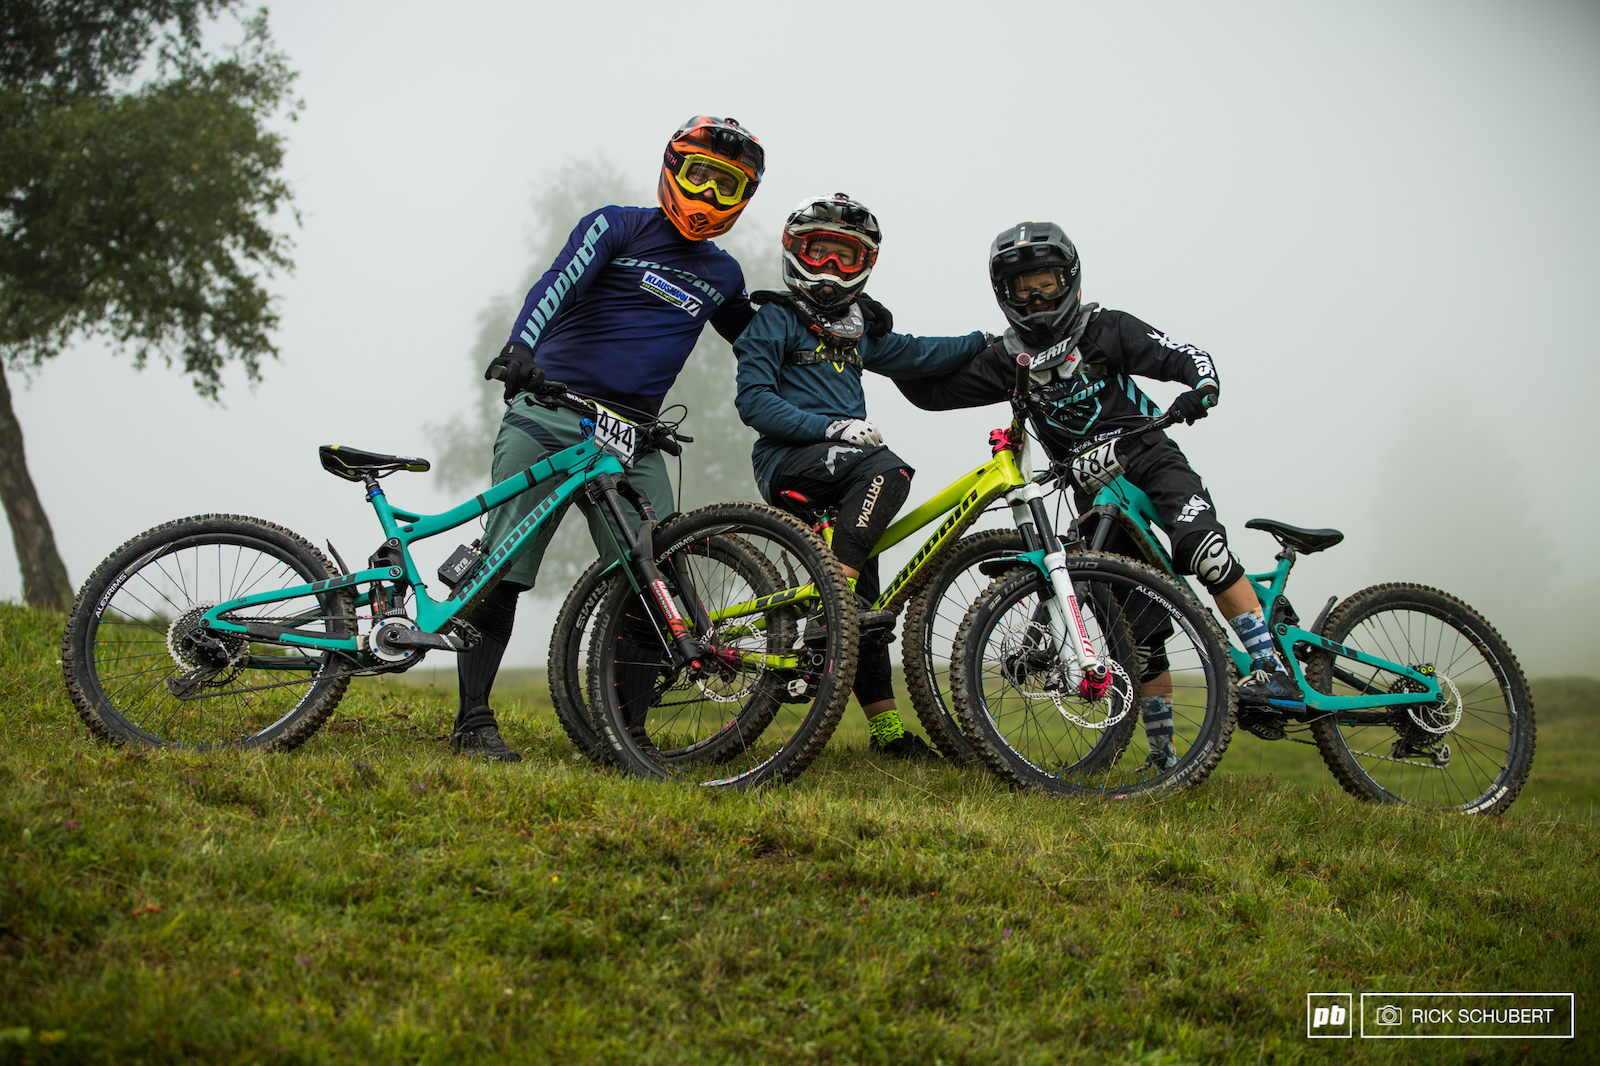 Markus Klausmann and his Propain Youngsters